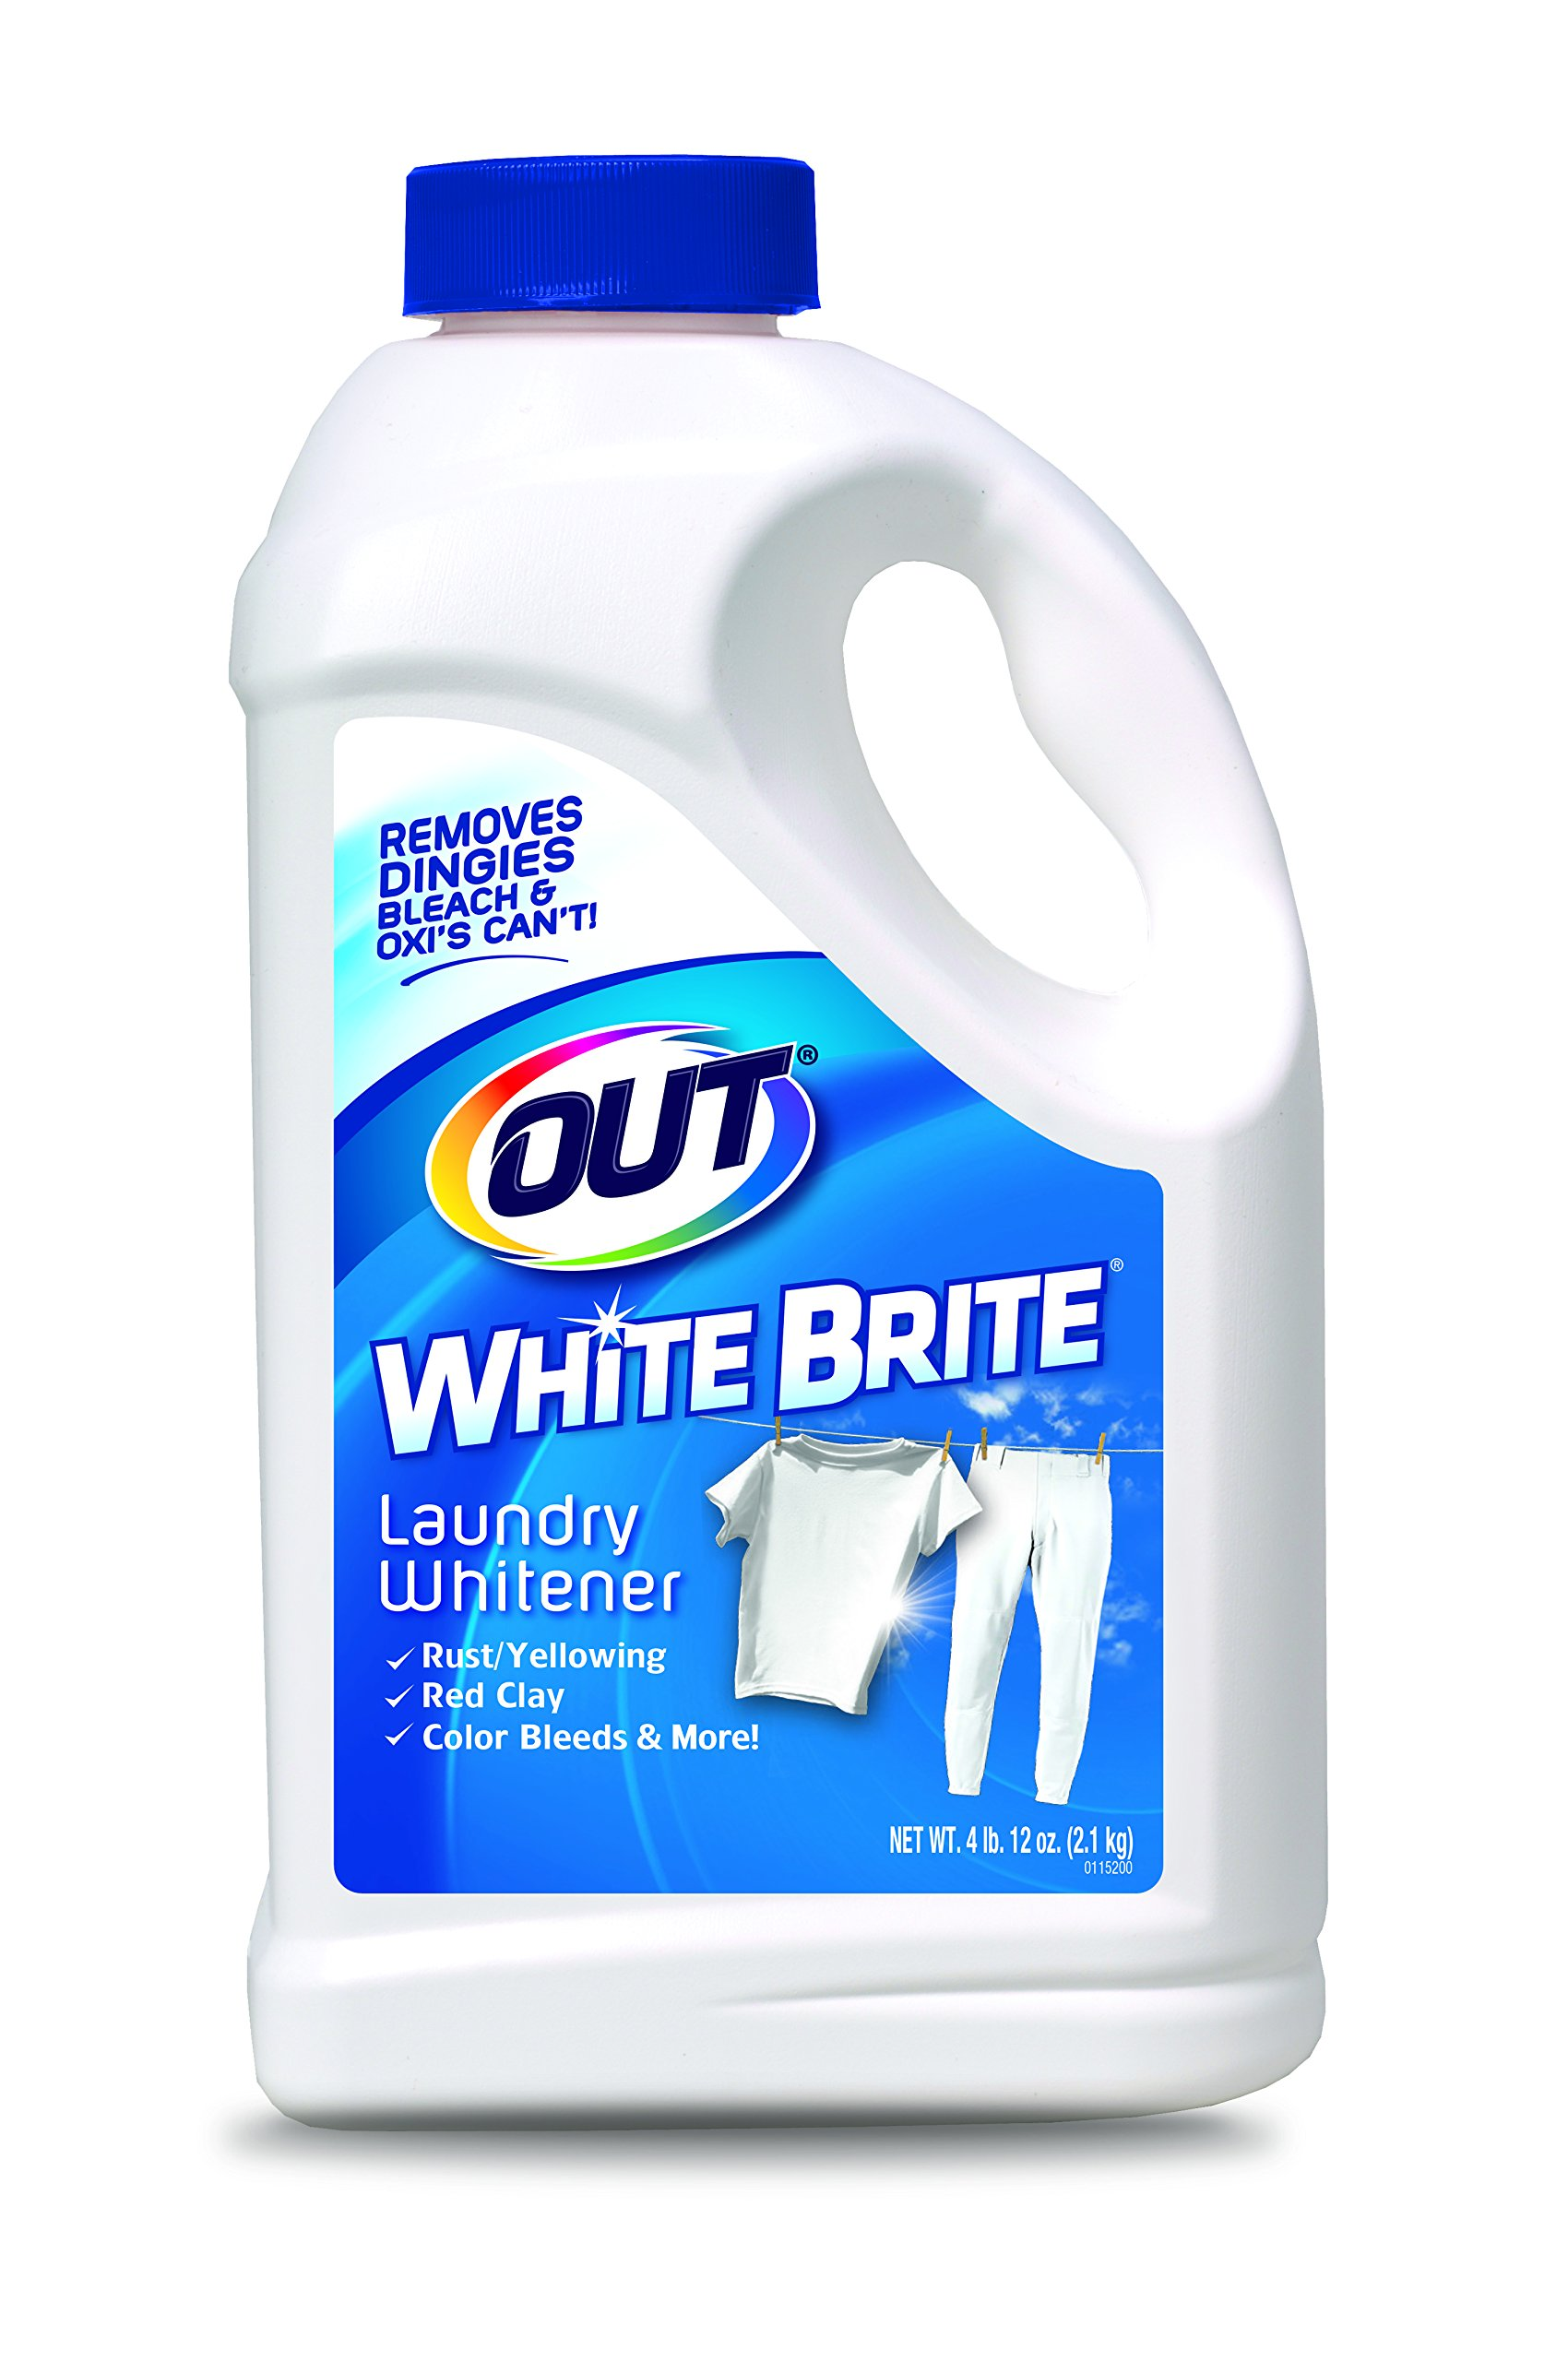 OUT White Brite Laundry Whitener, 4 lb. 12 oz. Bottle by Summit Brands (Image #1)